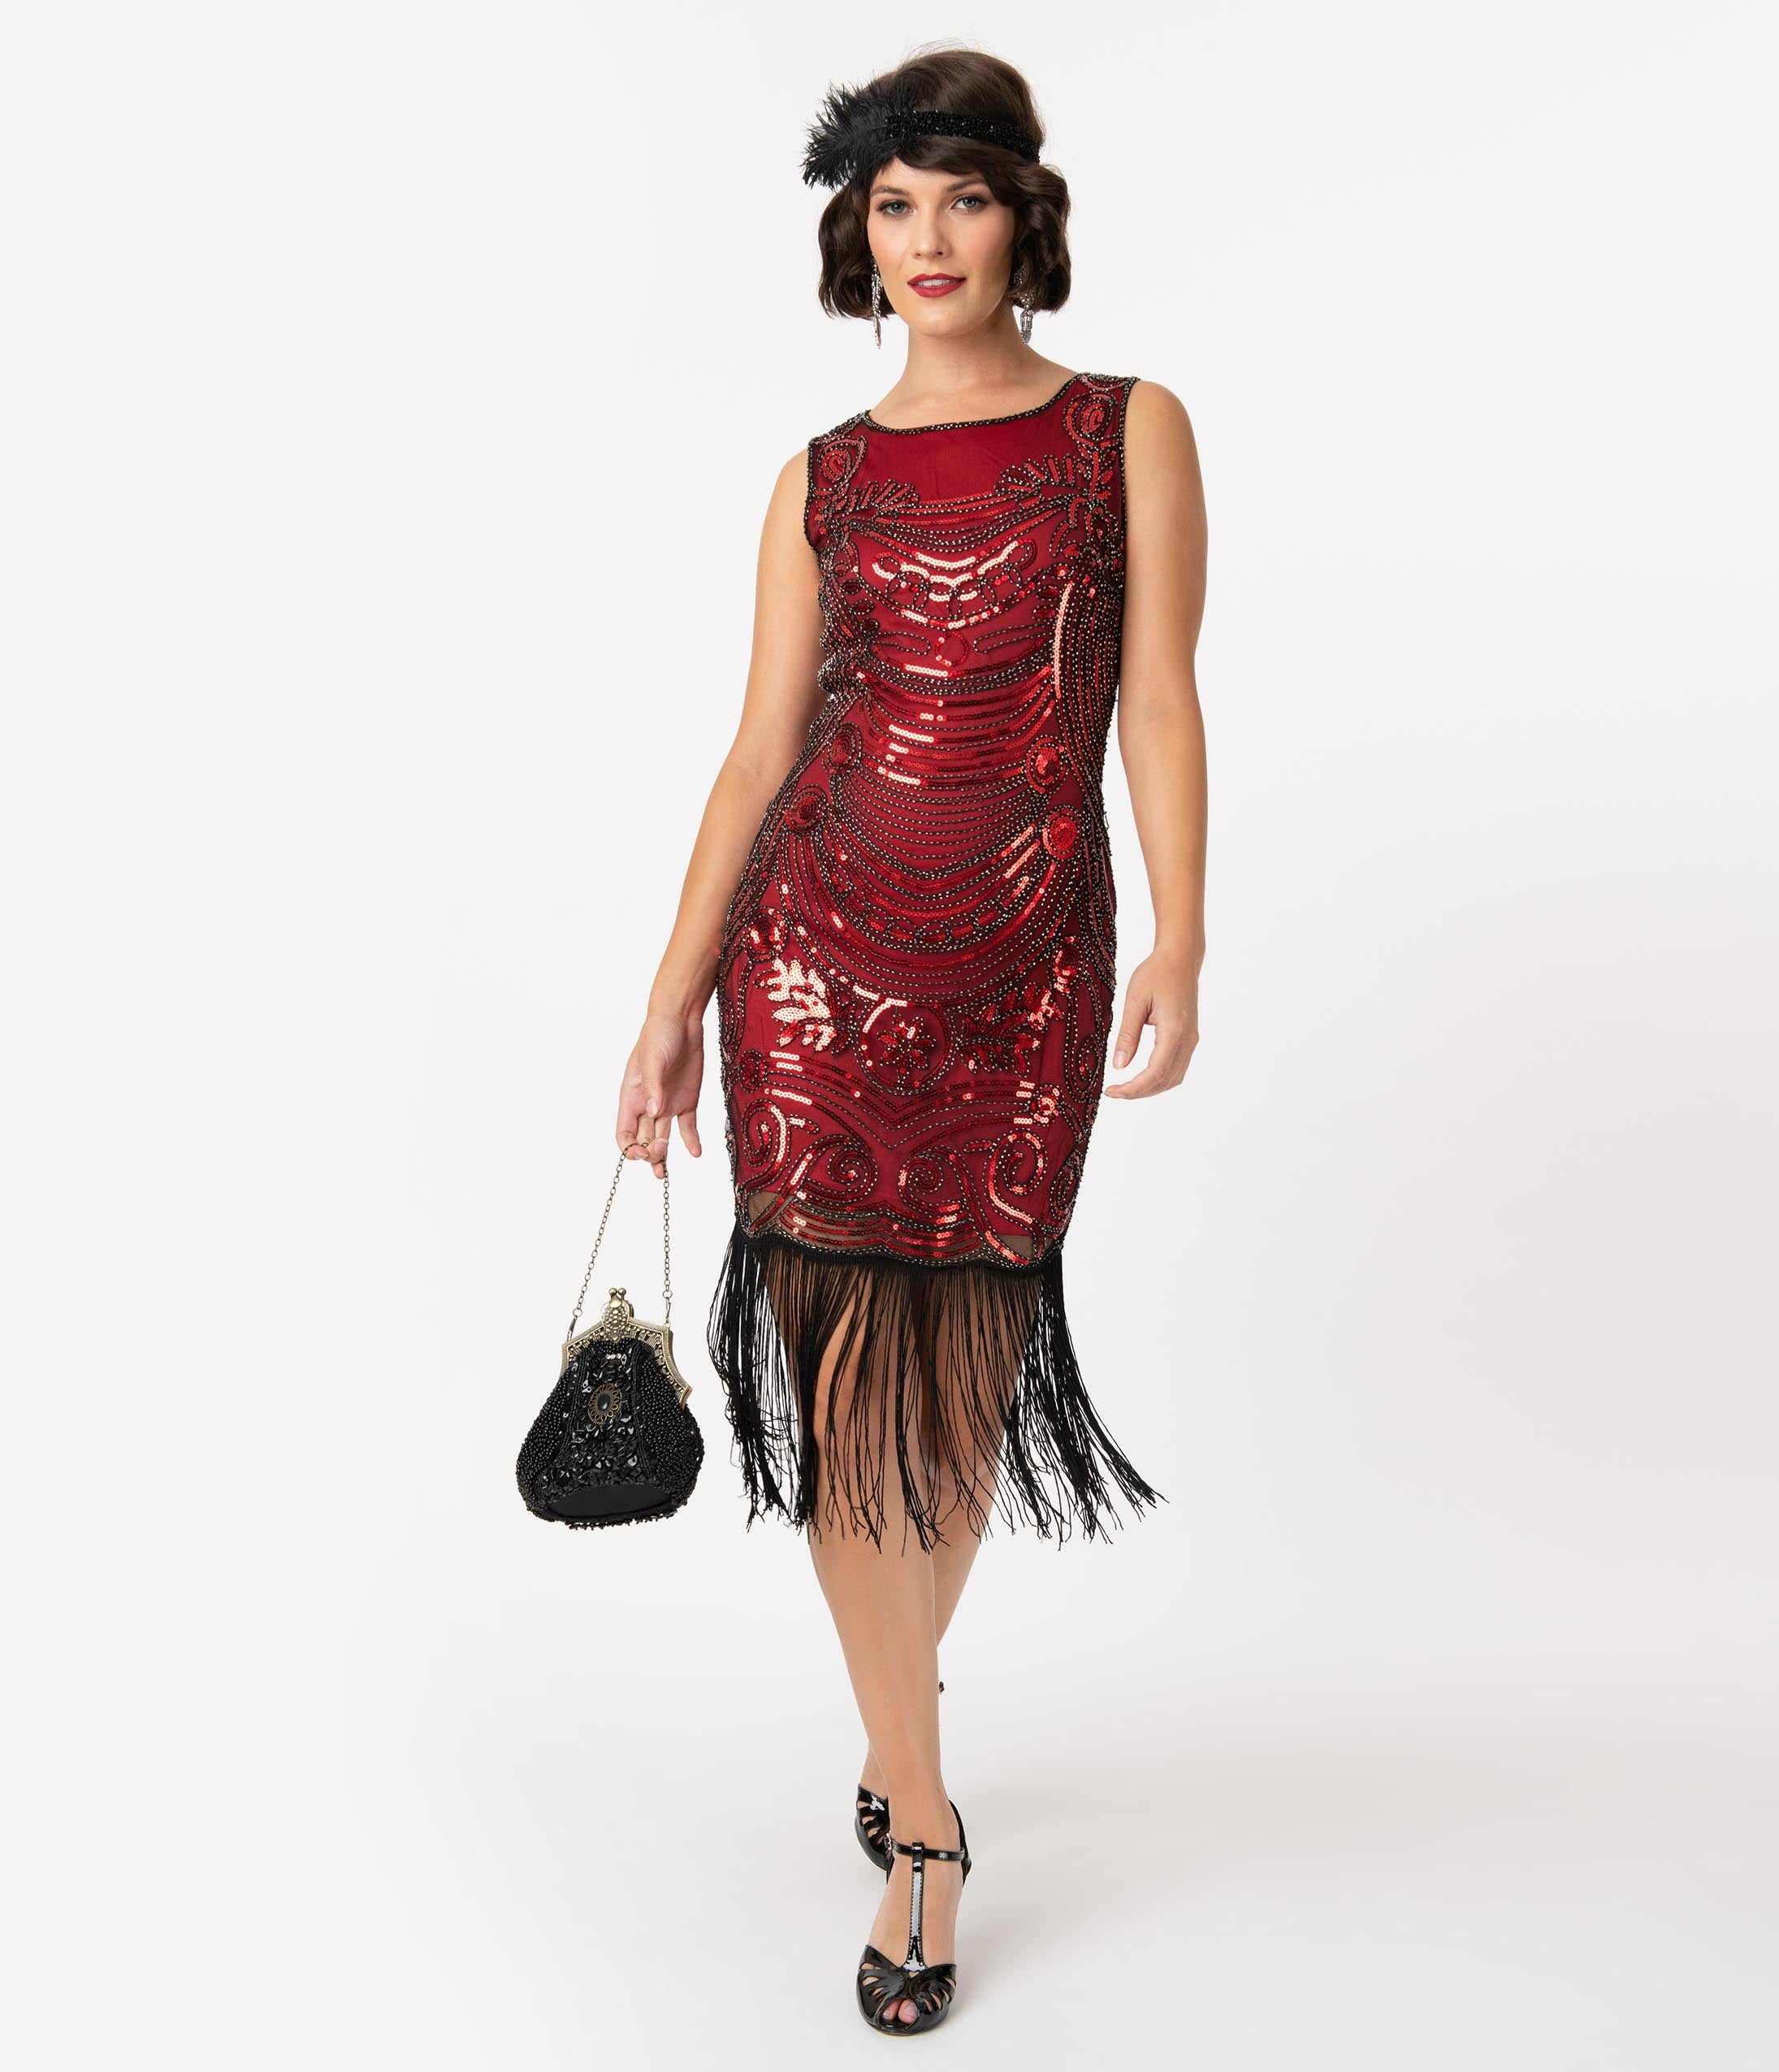 1920s Costumes: Flapper, Great Gatsby, Gangster Girl Unique Vintage 1920S Red  Black Beaded Yvette Fringe Cocktail Dress $98.00 AT vintagedancer.com